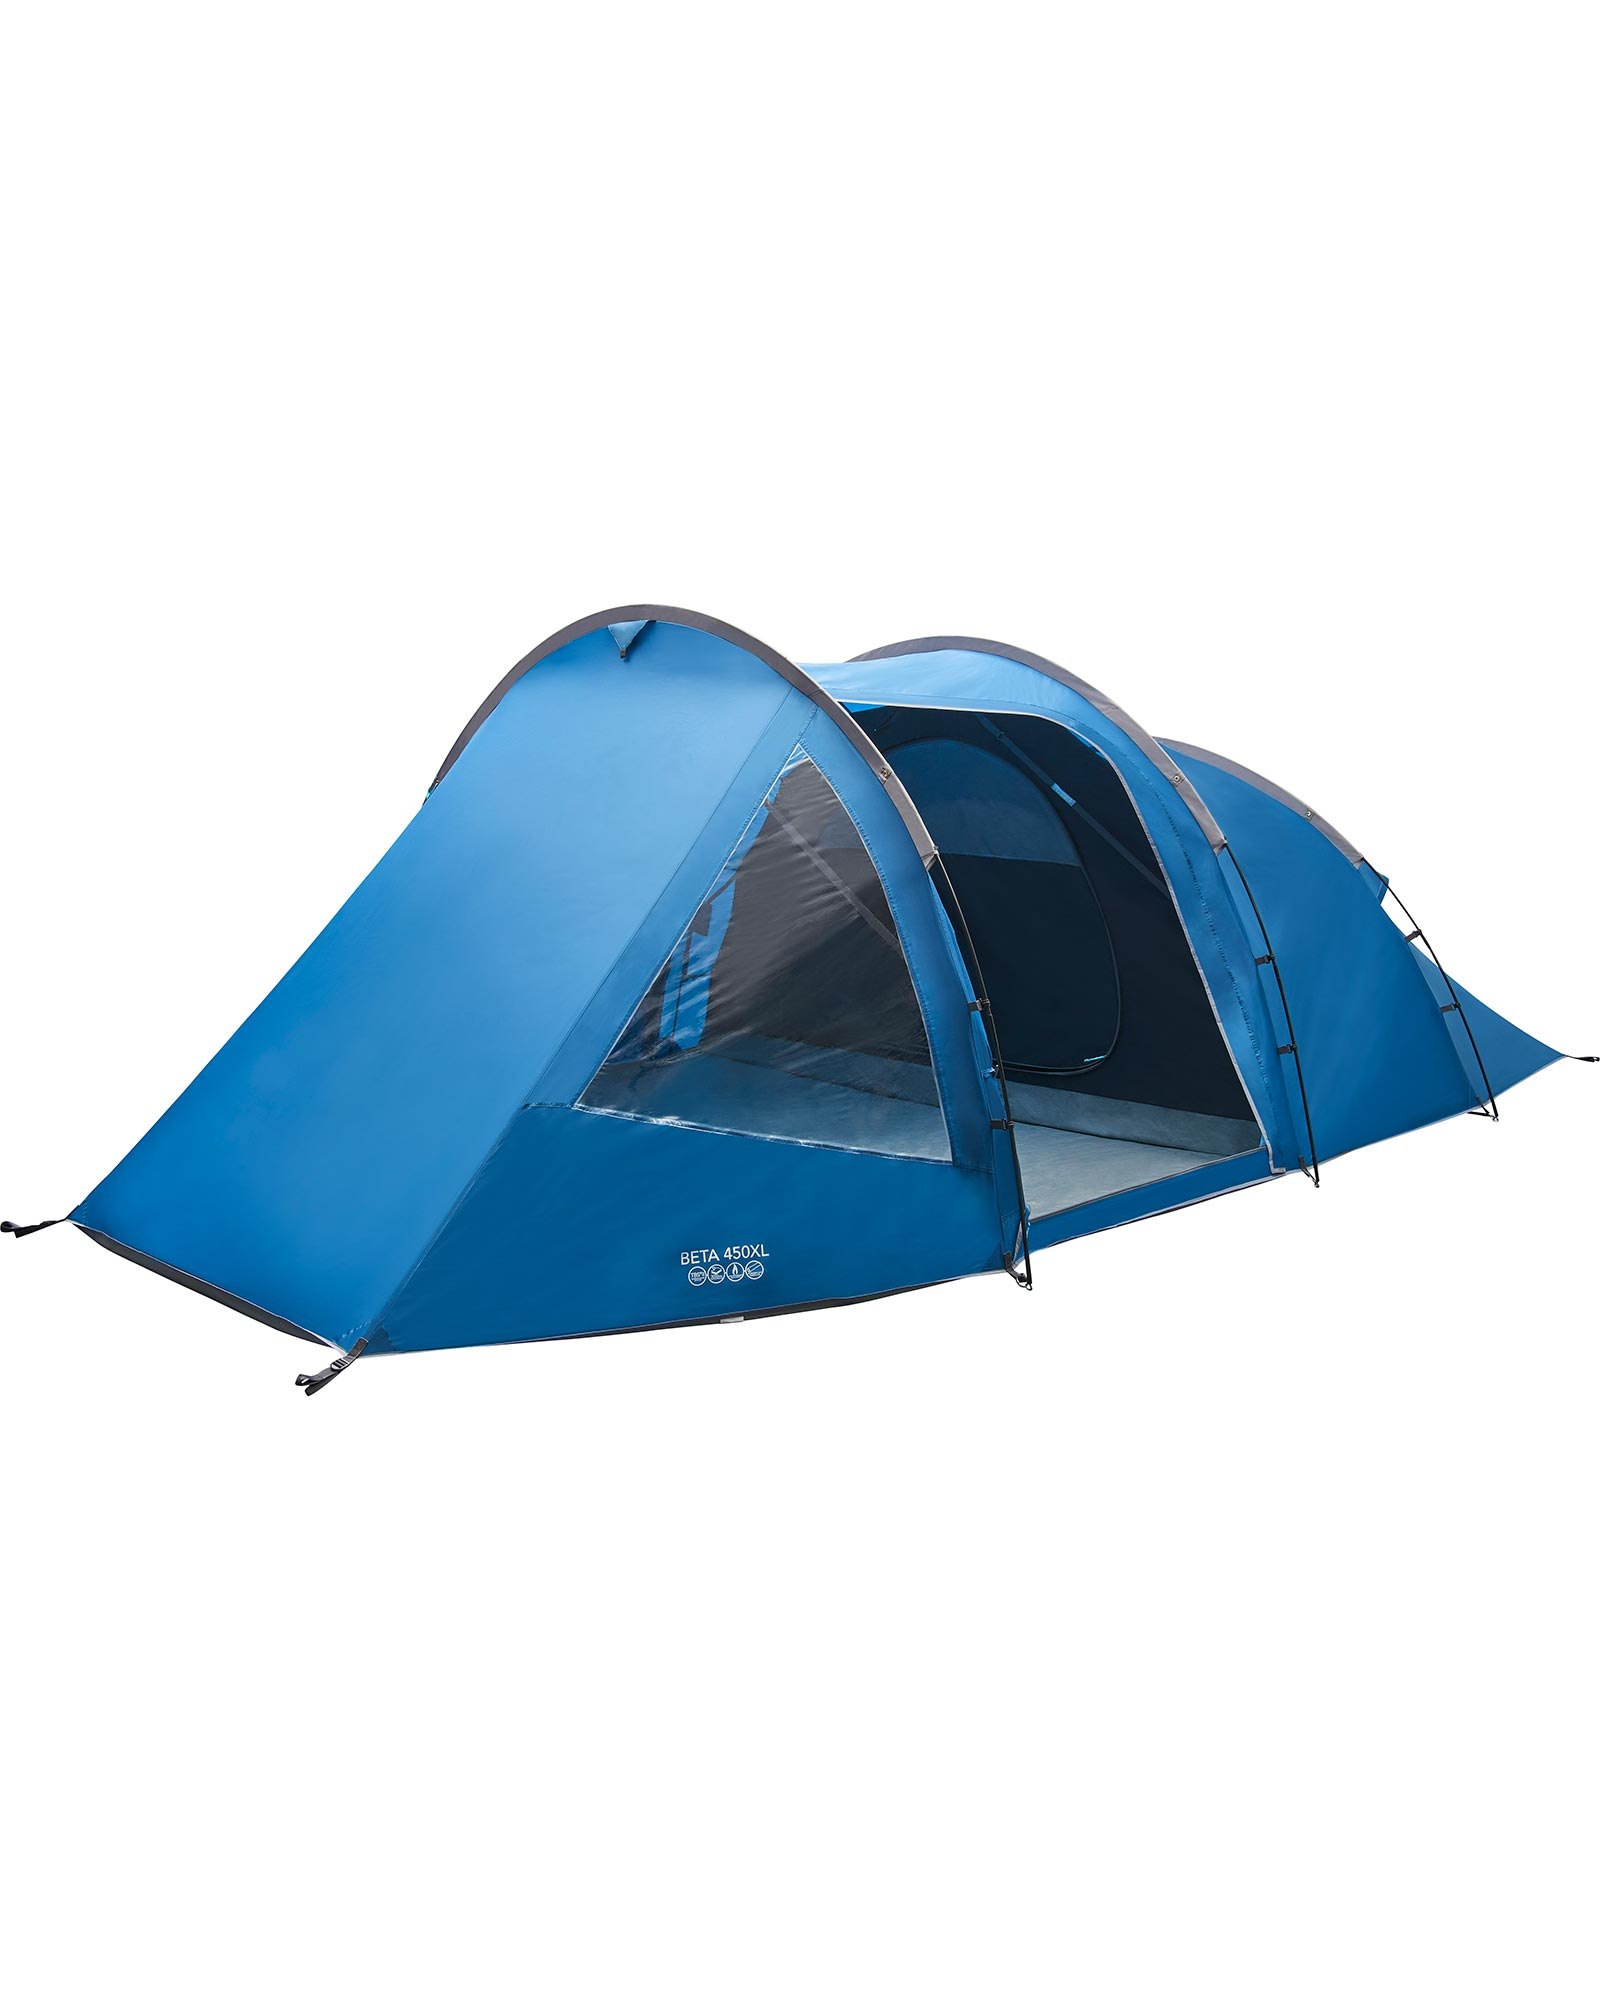 Vango Beta 450 XL Tent 0